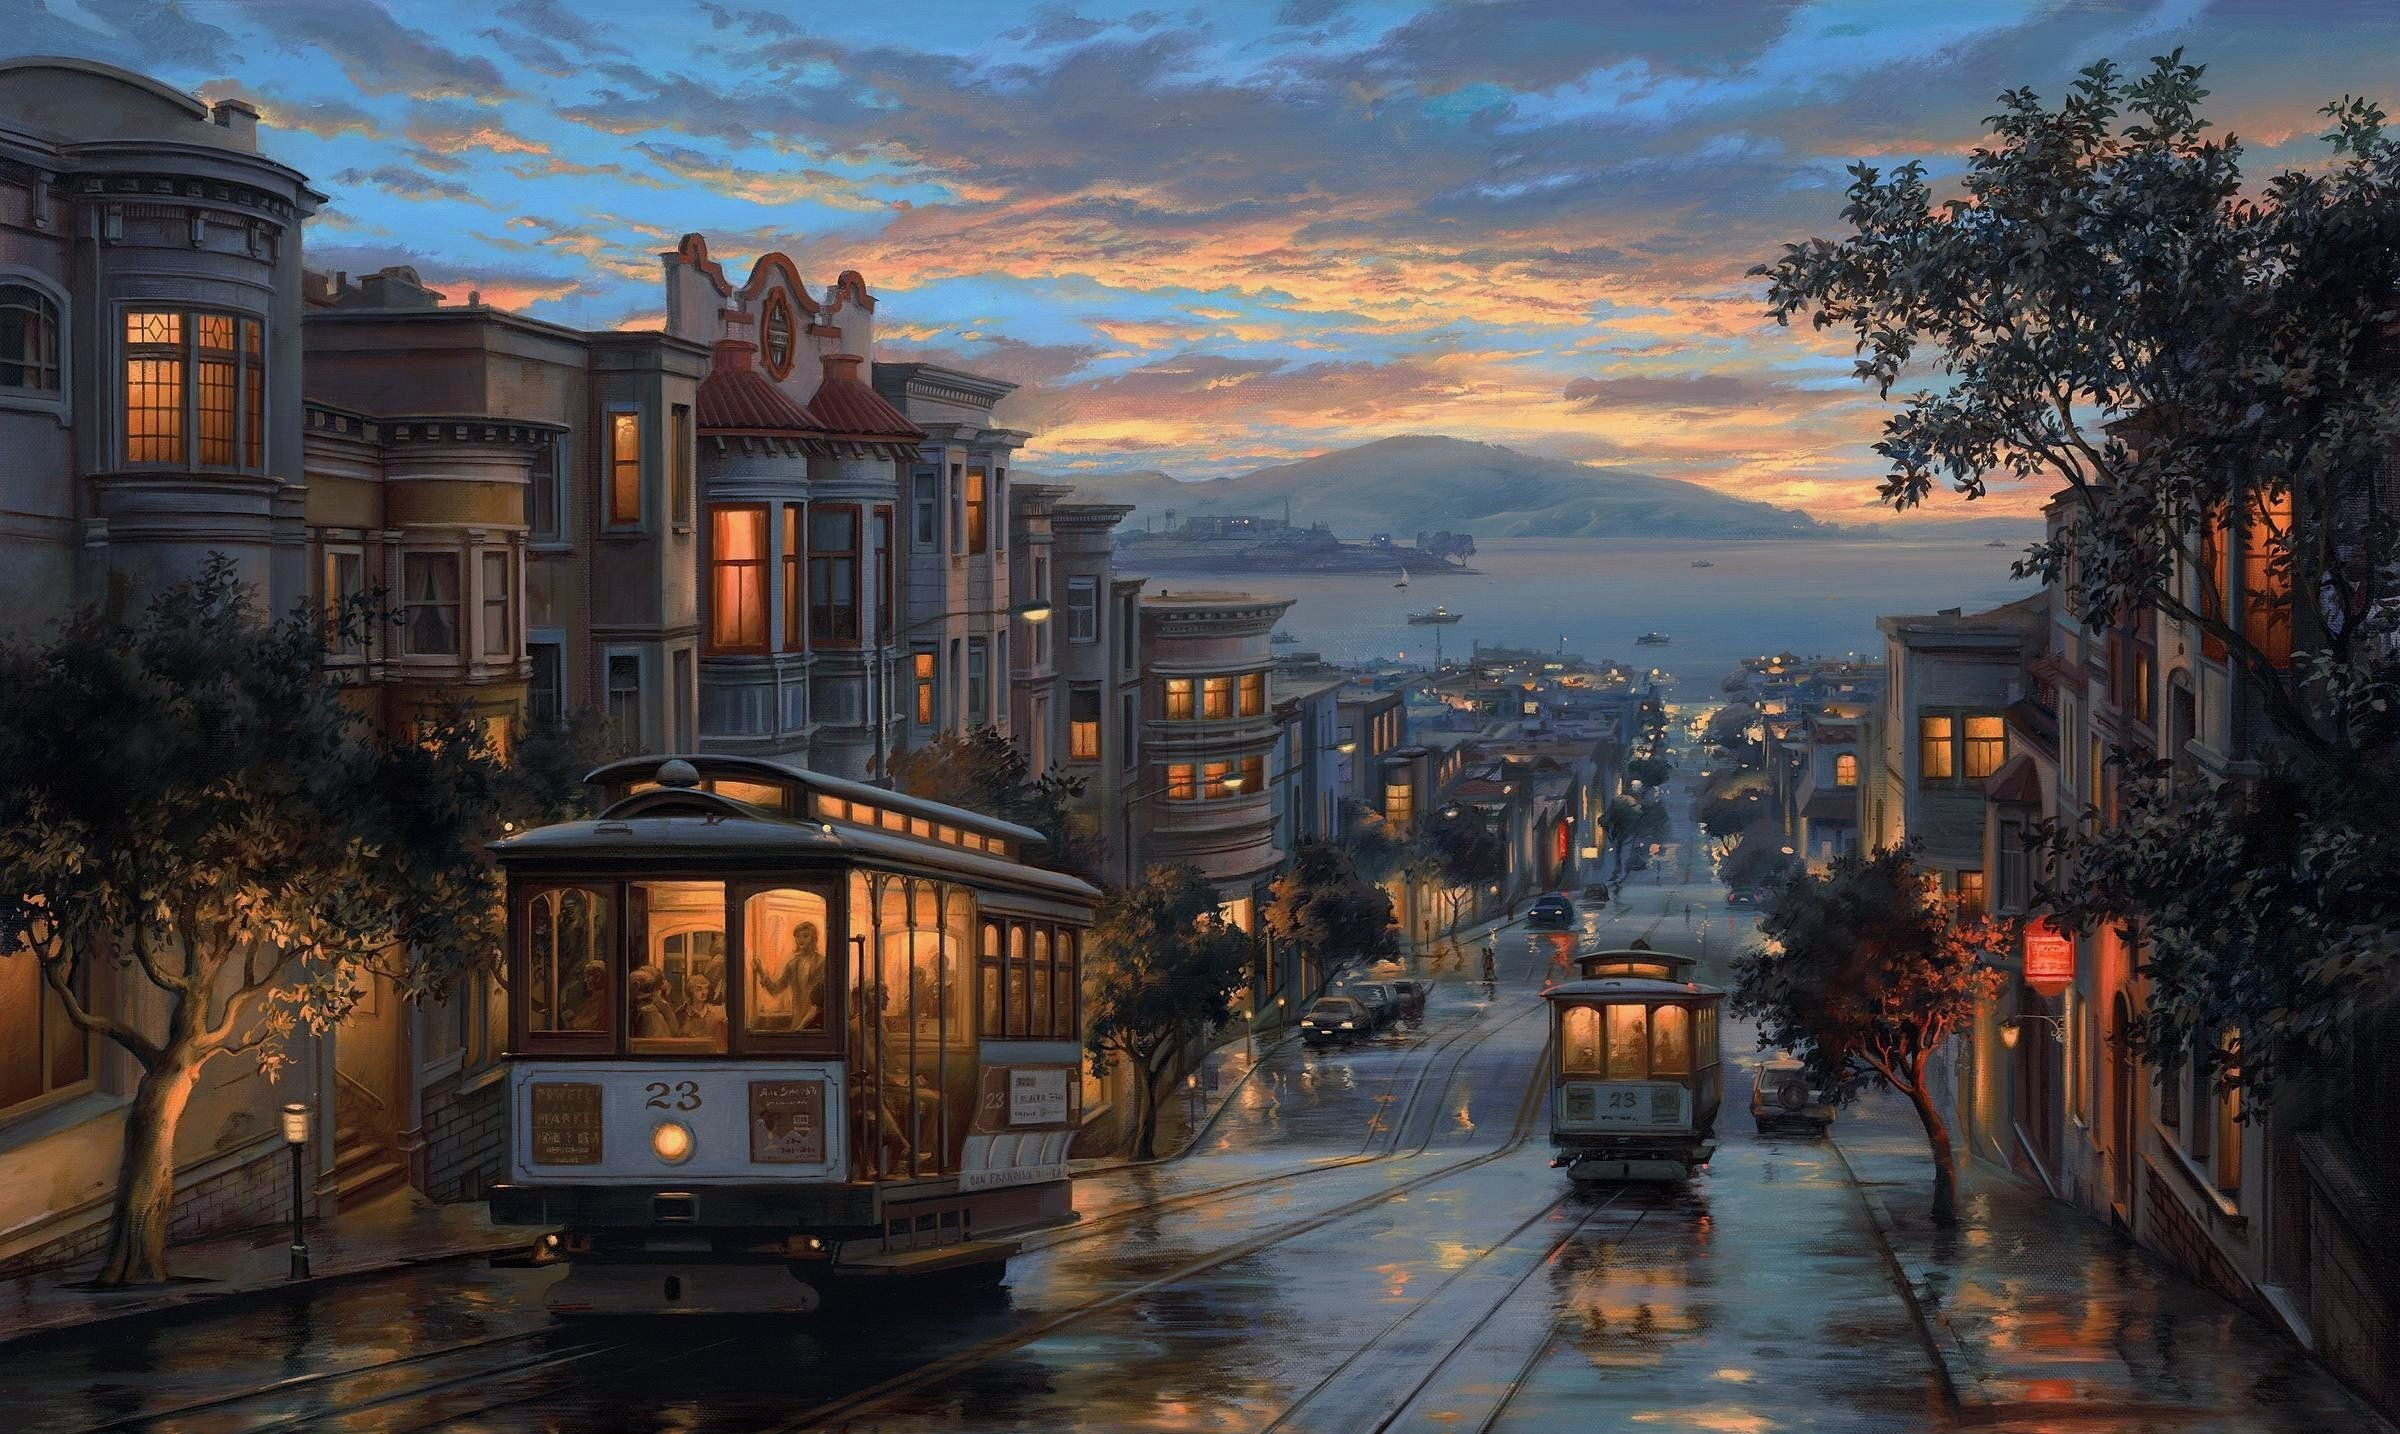 san-francisco-4k-hd-wallpapers-unabuenaidea.es (26)